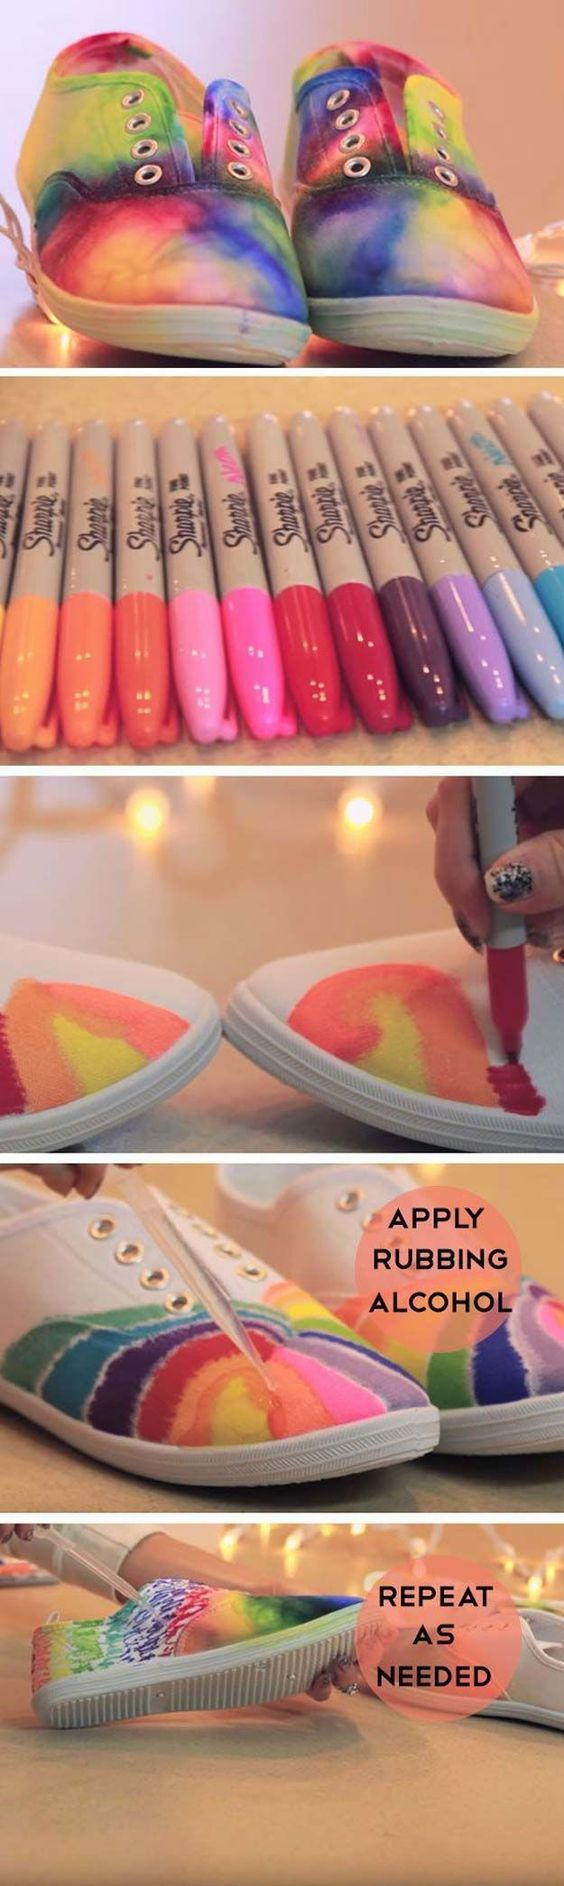 25 best ideas about summer crafts on pinterest kid Summer craft ideas for adults